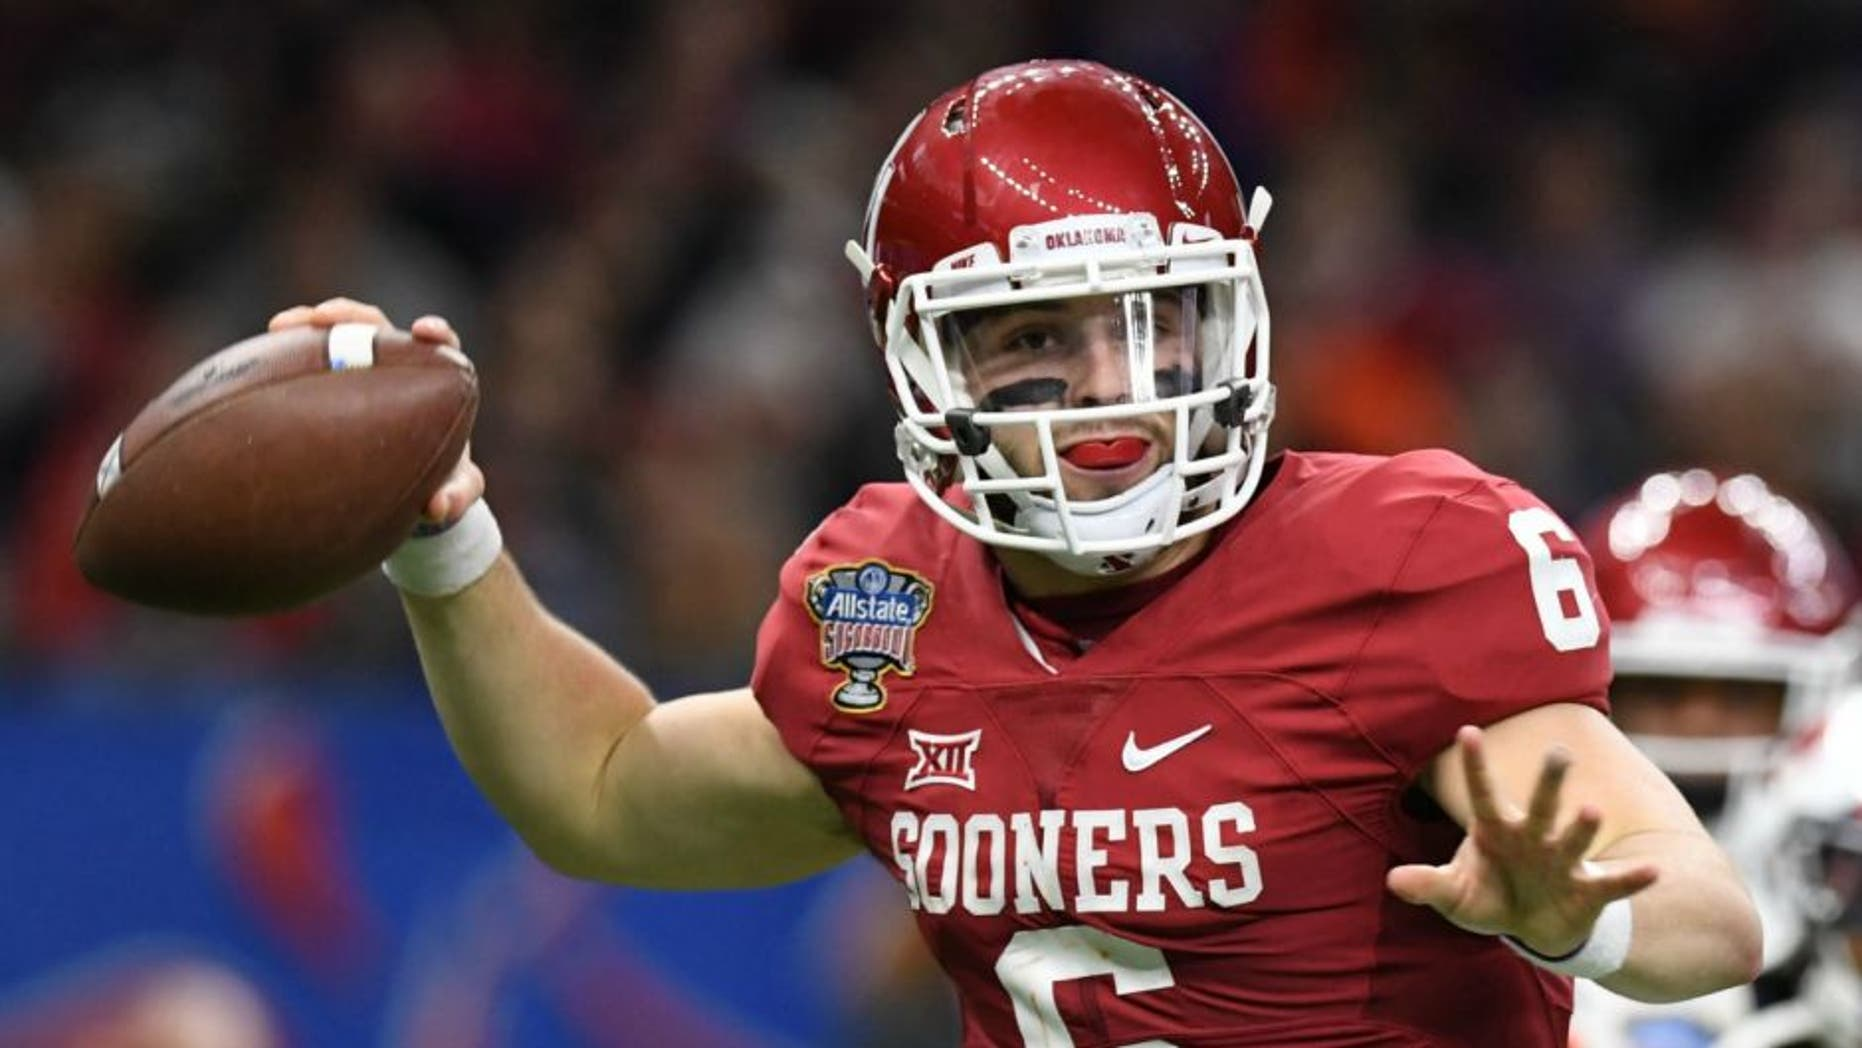 51c87c2b1 Oklahoma Sooners QB Baker Mayfield was arrested early Saturday in Arkansas  on charges of public intoxication